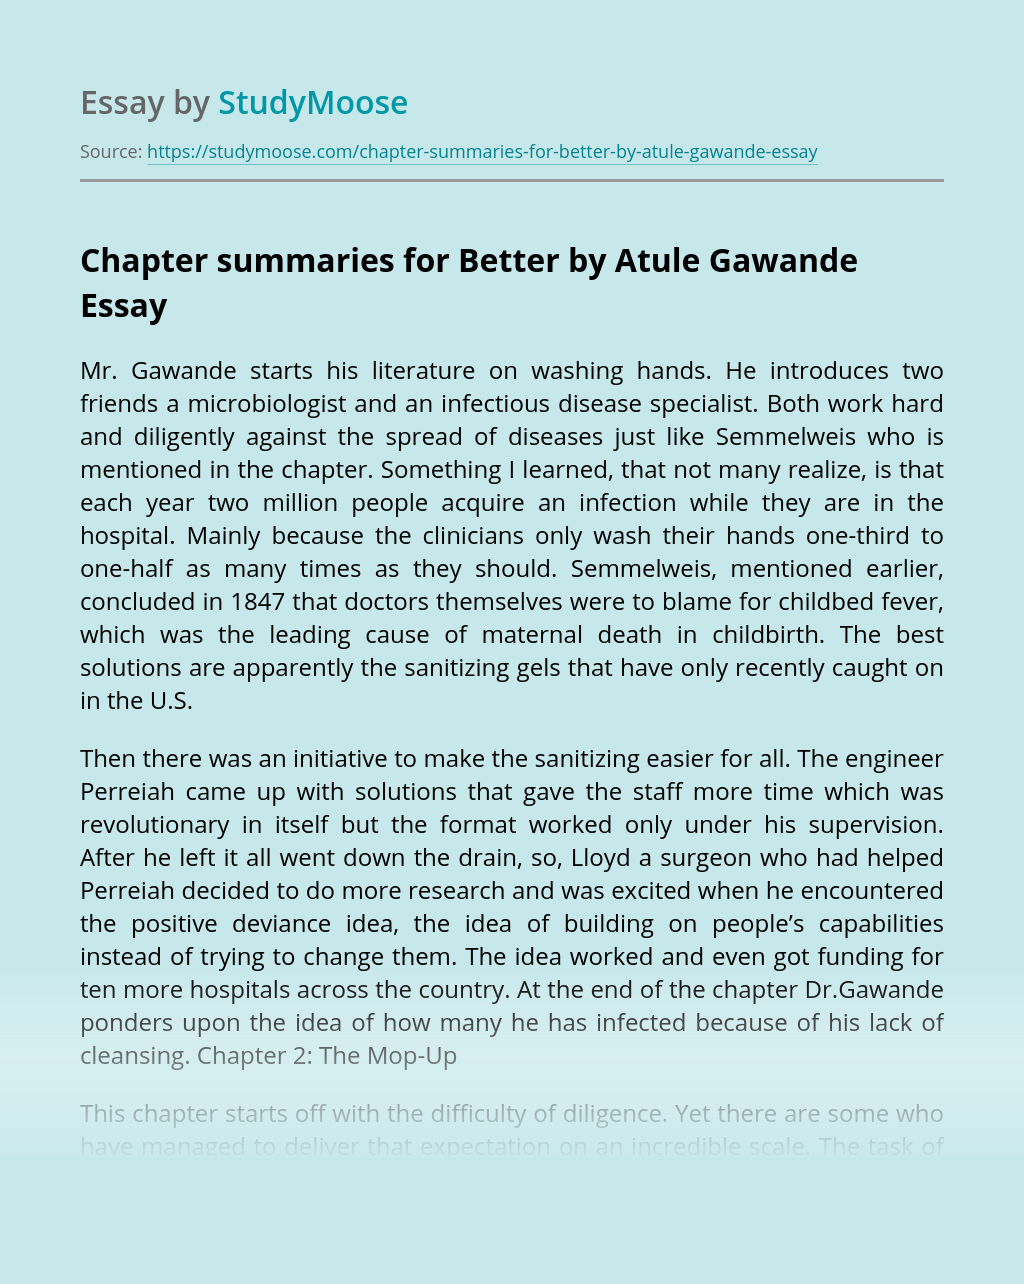 Chapter Summaries for Better by Atule Gawande